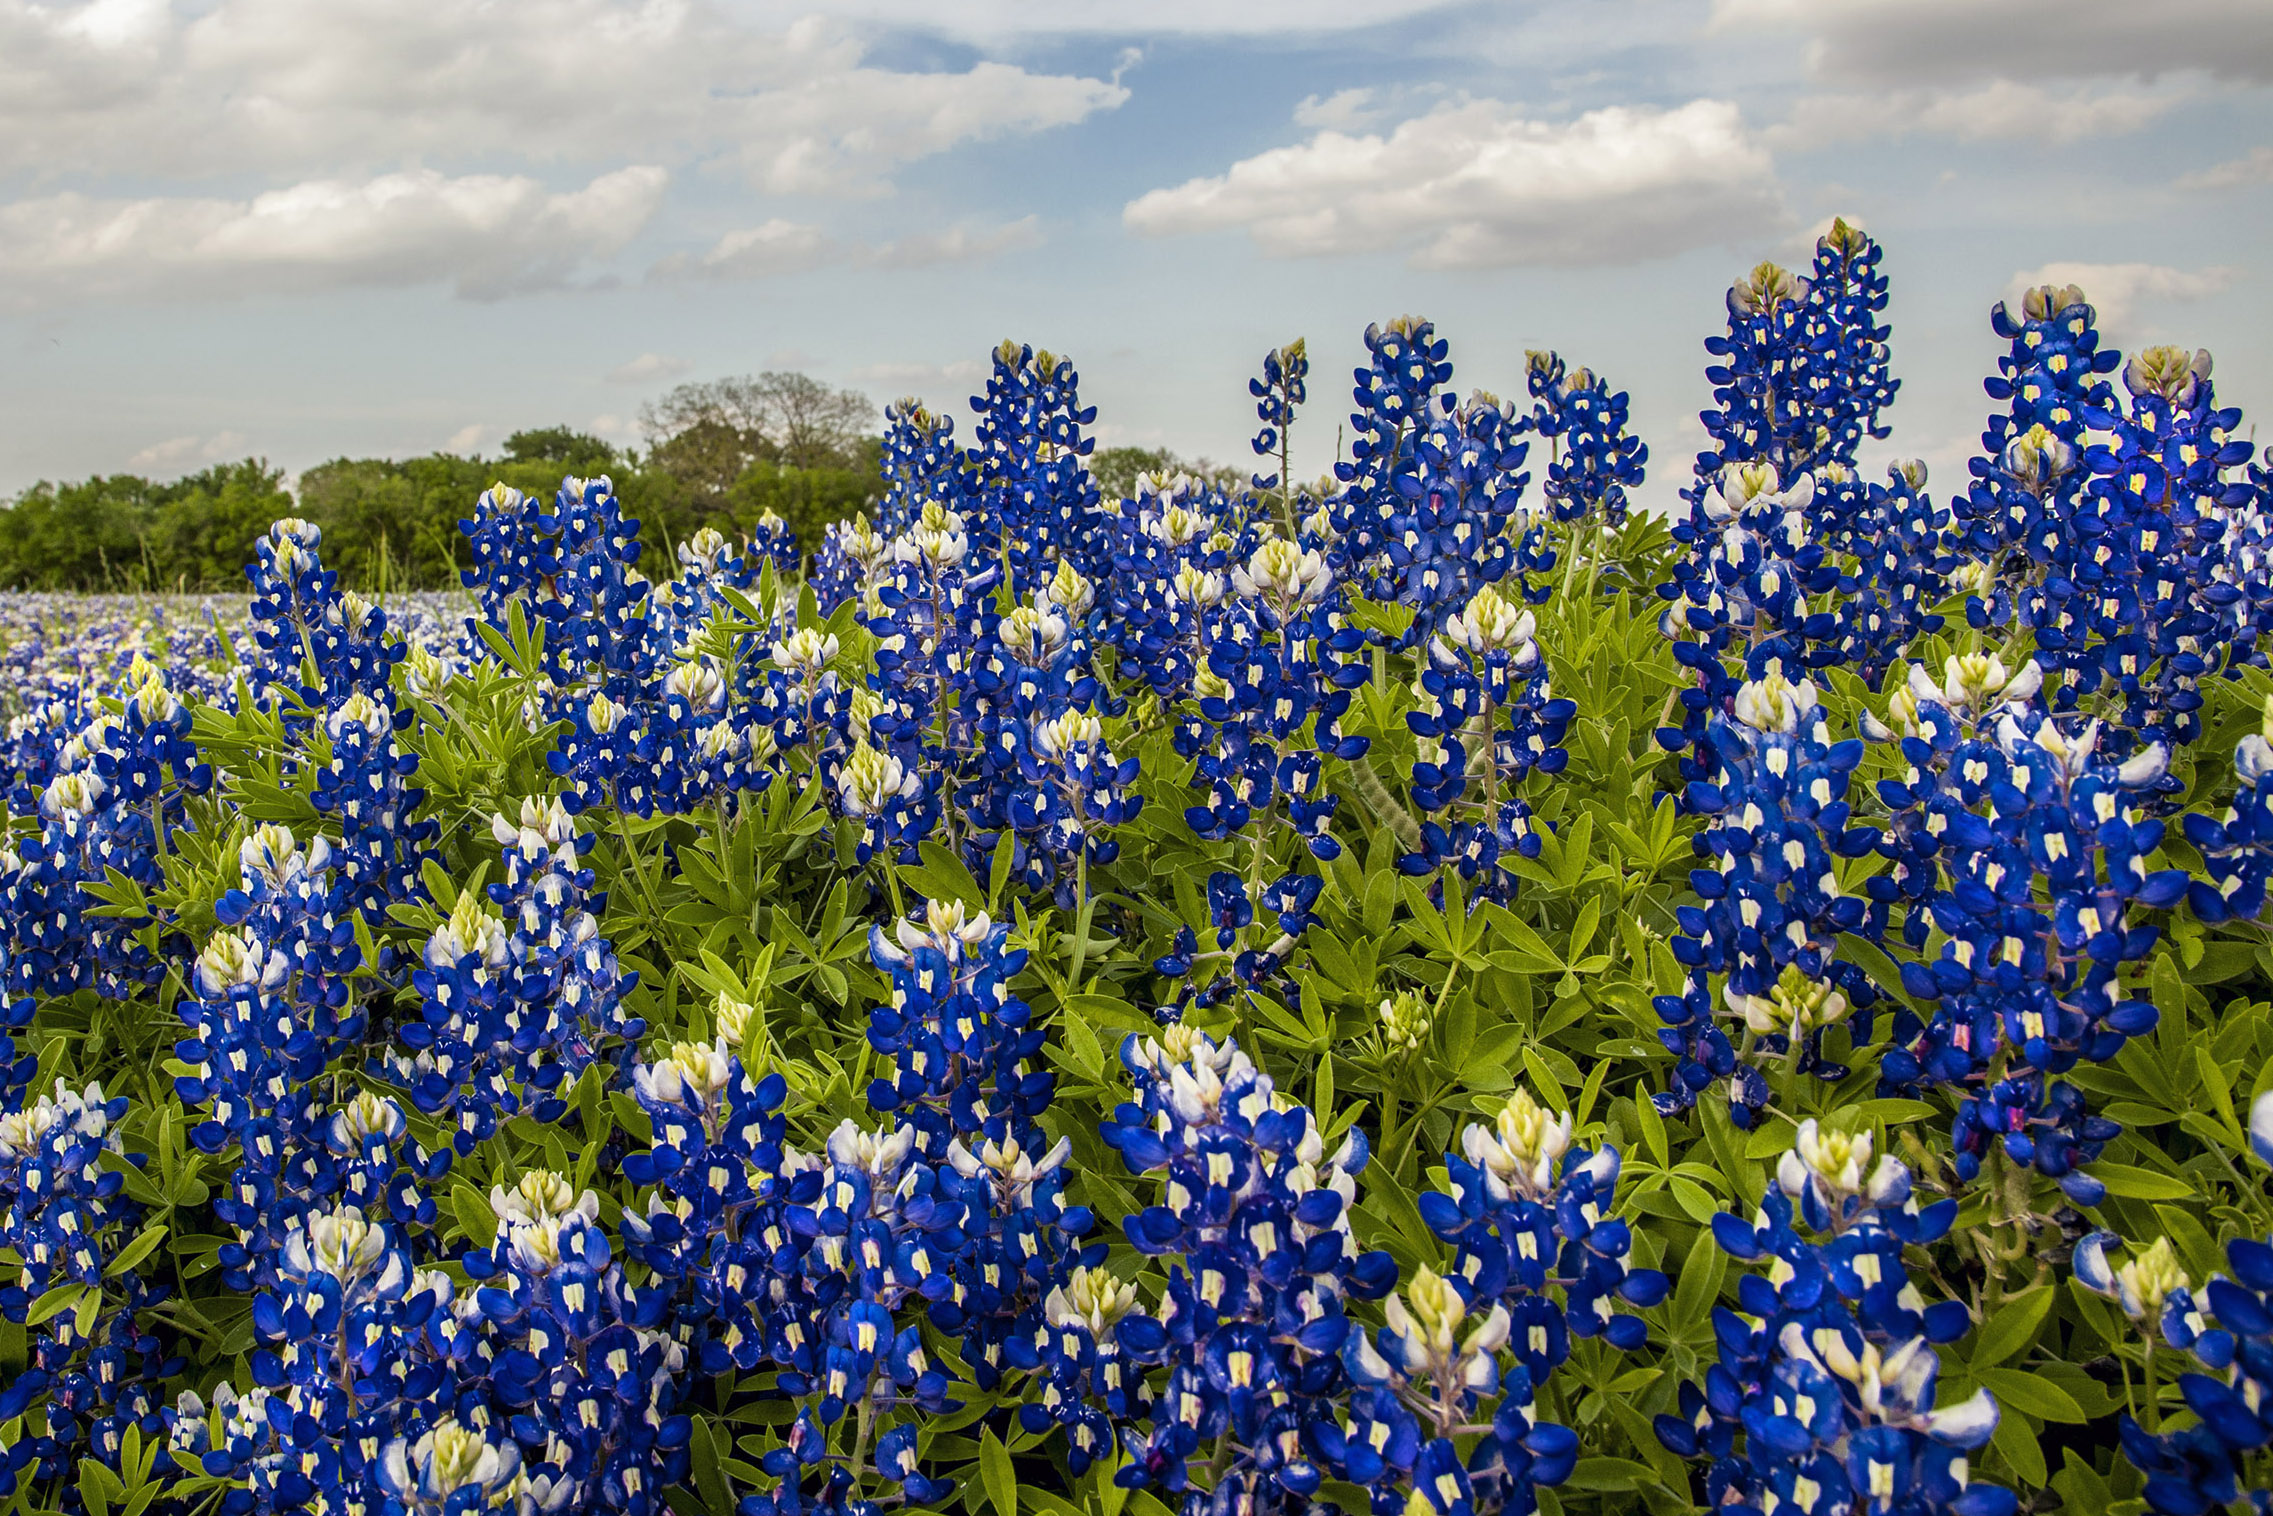 Shoot at eye level when there are a few bluebonnets.  Shoot just above eye level when there is an expanse of them.